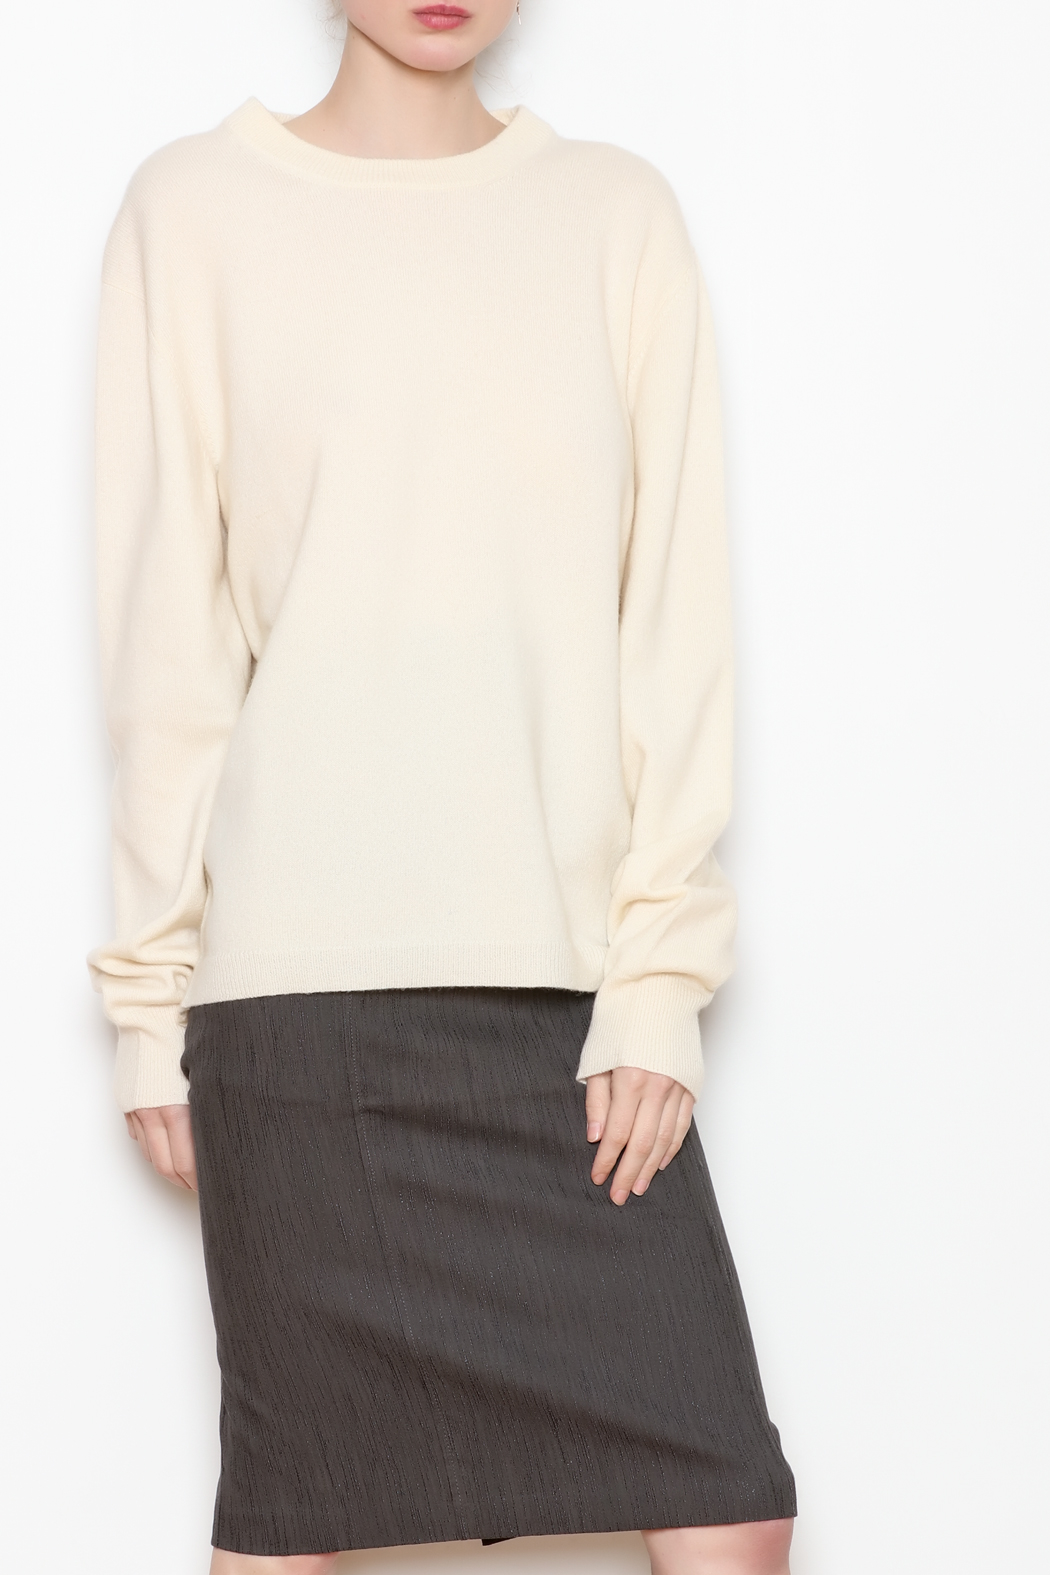 National Cashmere Roundneck Cashmere Sweater - Main Image